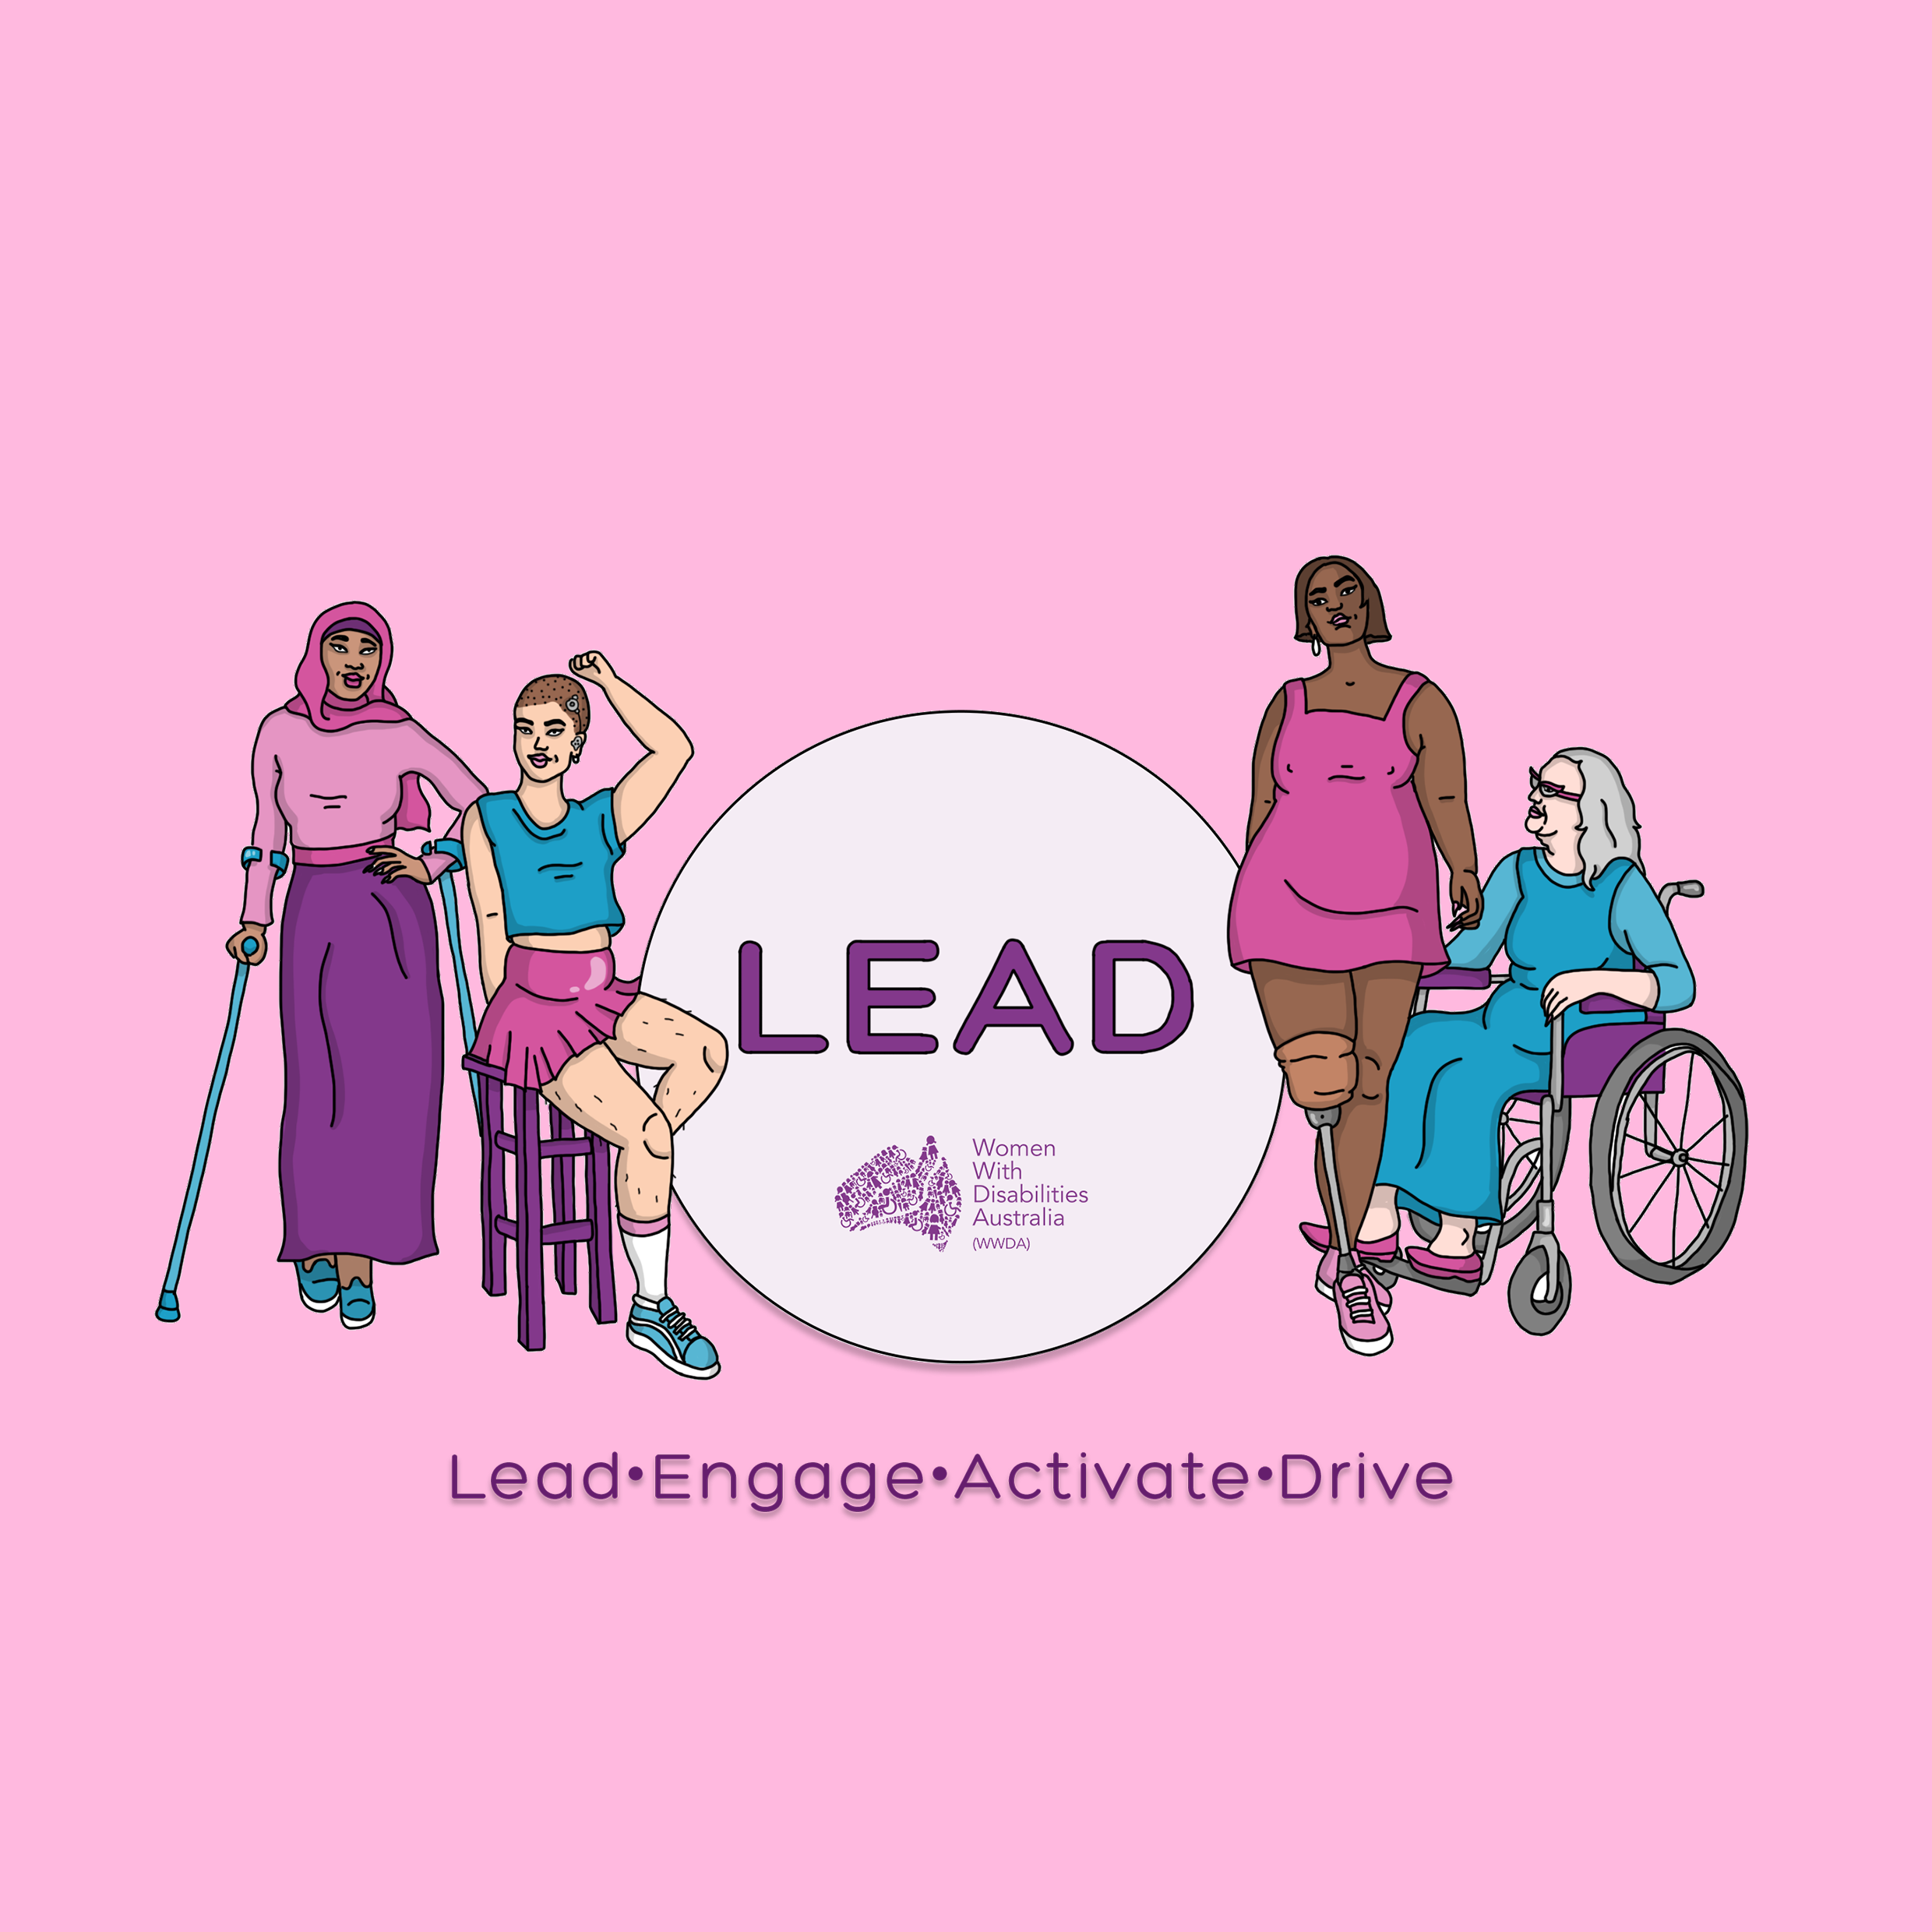 Bright pink background, an illustration of 4 women representing diversity and disability. Heading says LEAD, Lead, Engage, Activate, Drive. Underneath as a seperate purple heading that says WWDA LEAD Survey.